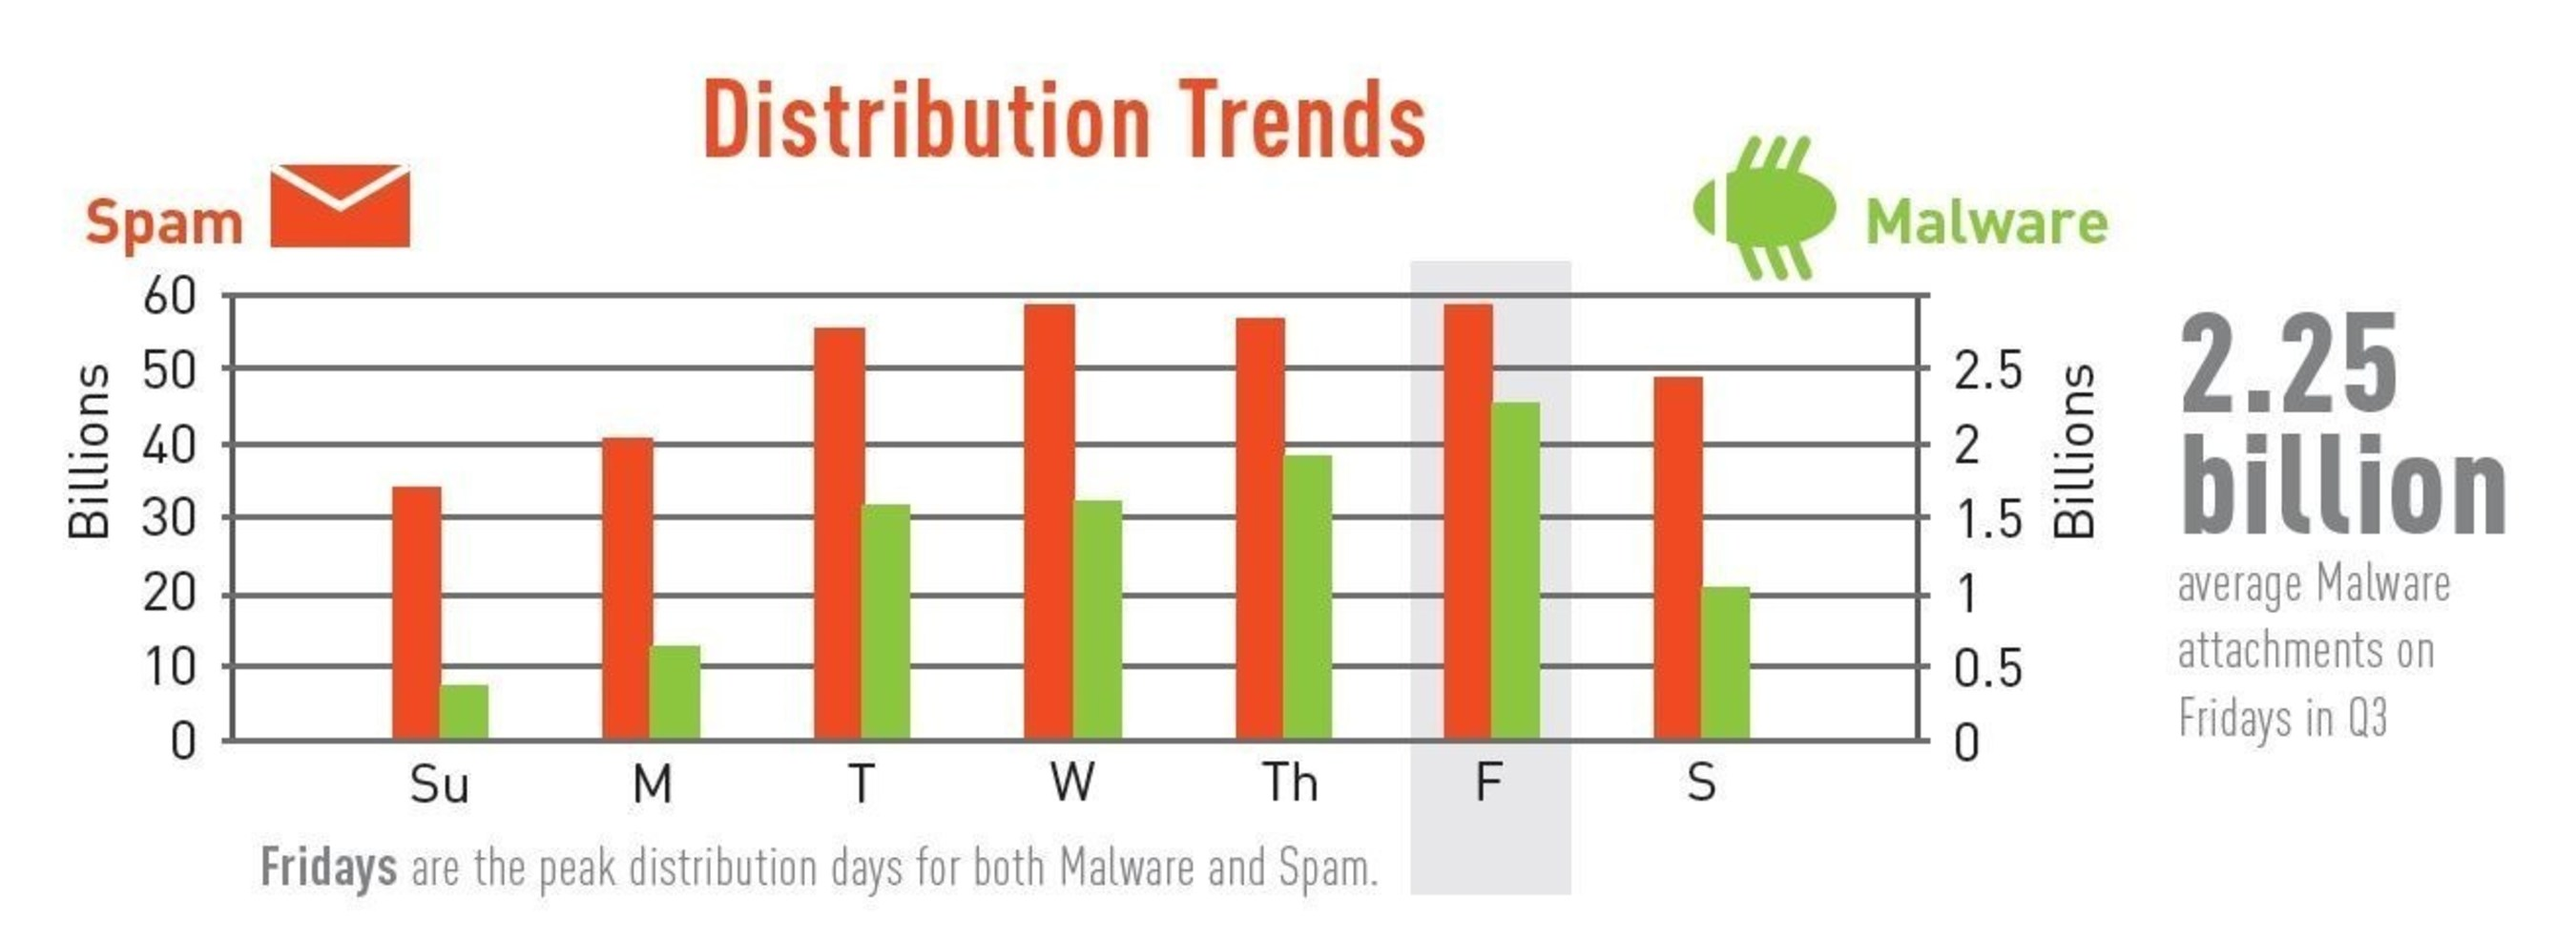 CYREN Cyber Threat Report: Malware Distribution Peaks on Fridays to Target Employees' Less Protected Weekend Internet Access